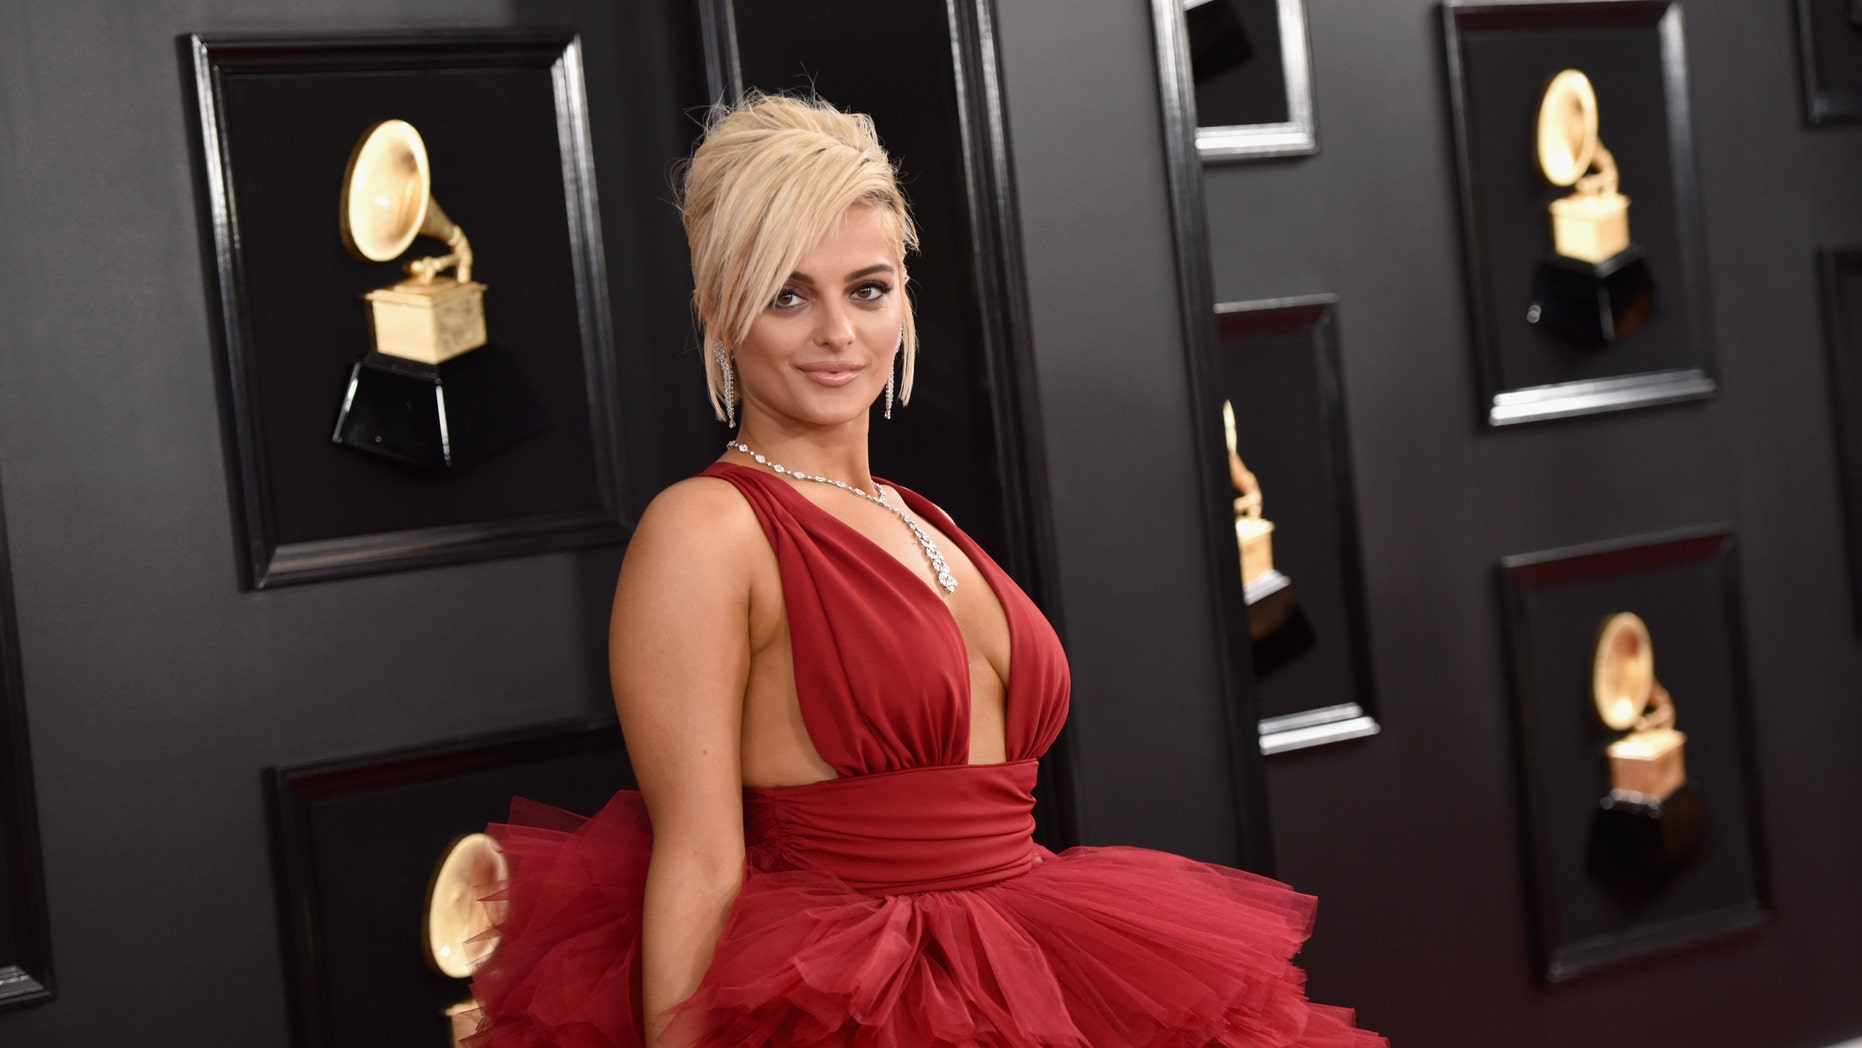 Bebe Rexha Credits Her Vision Board for 2019 Grammys Nominations